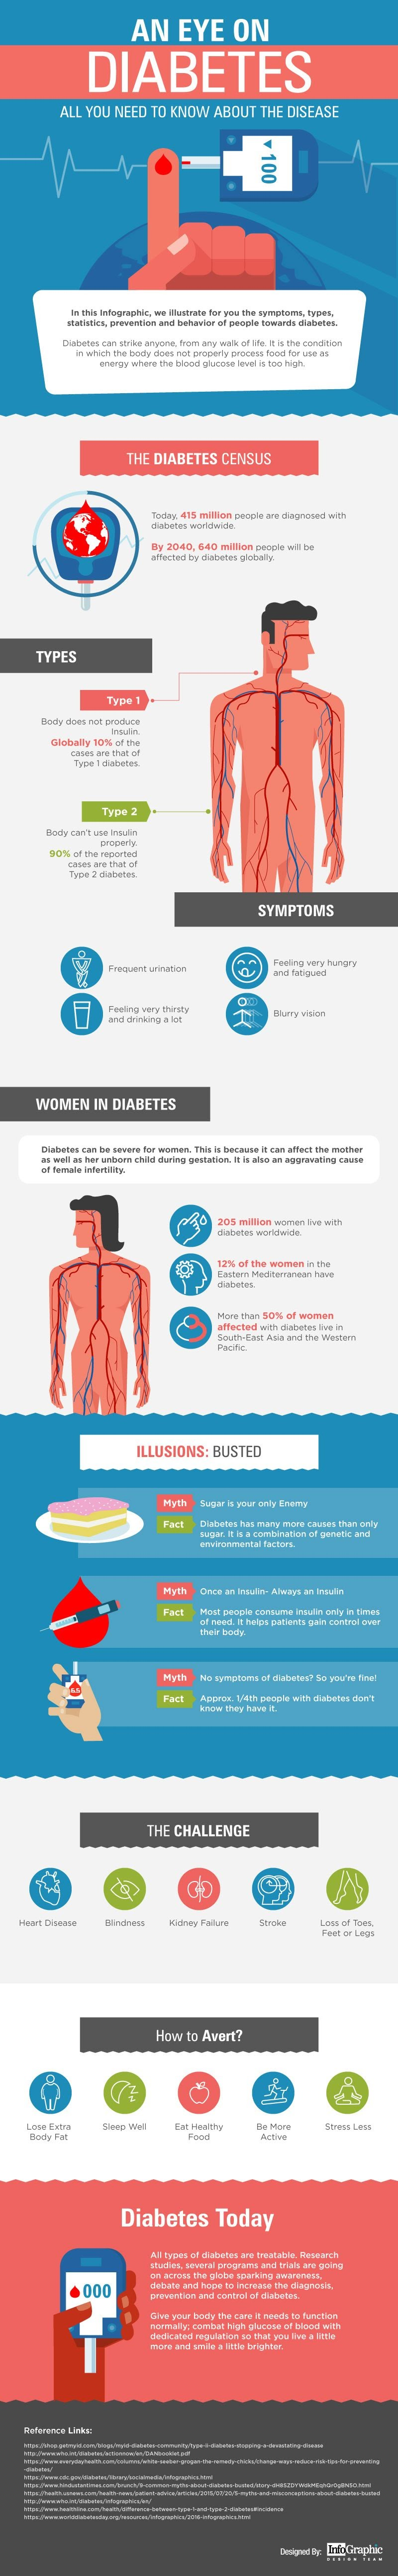 An Eye on Diabetes #infographic